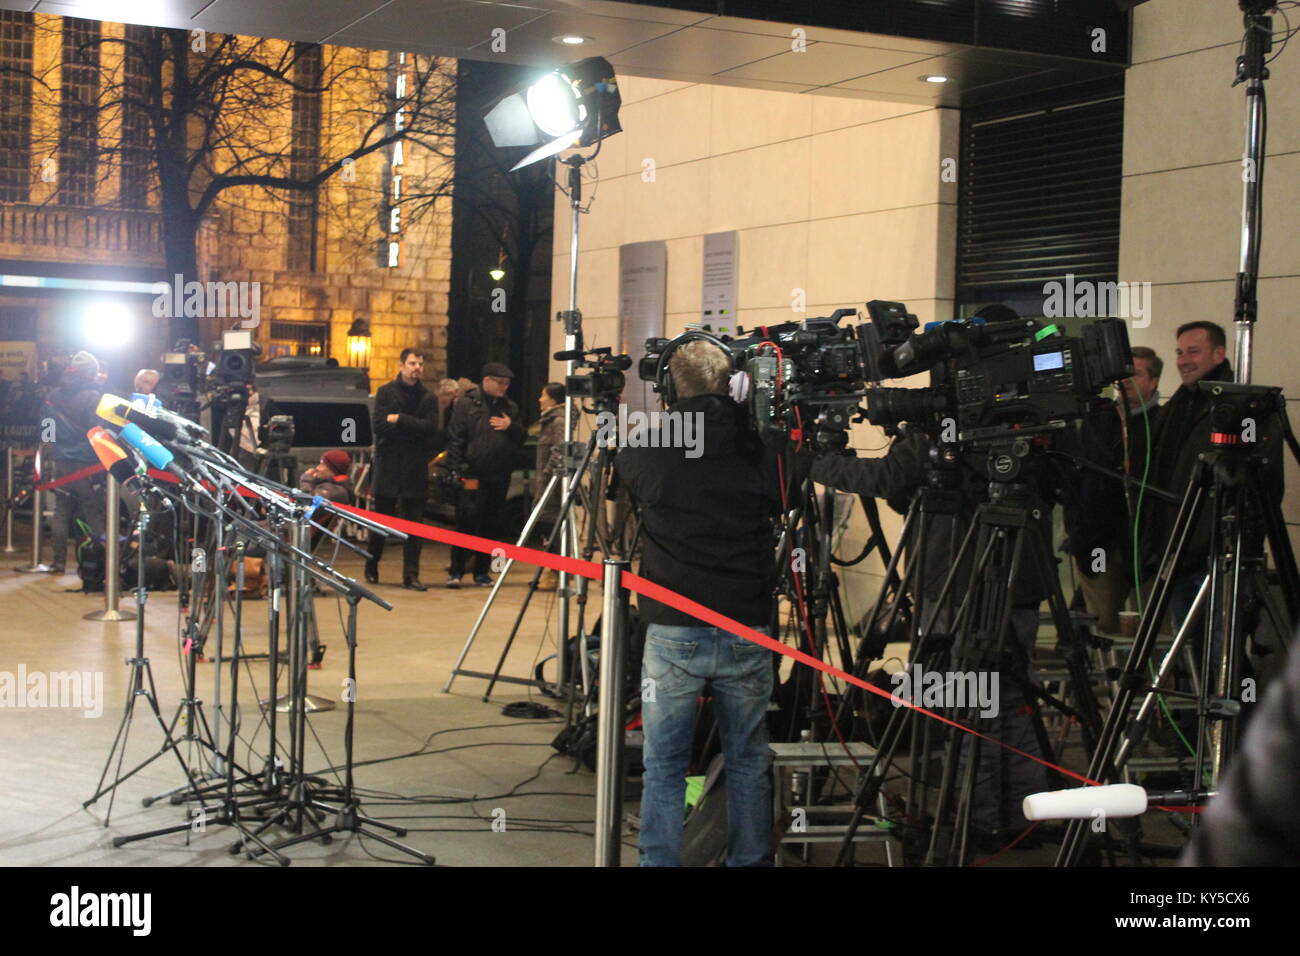 Berlin, Germany. 11th Jan, 2018. Impressions of the Last Day of Sondierungsgespräche in Berlin/Germany, SPD - Stock Image